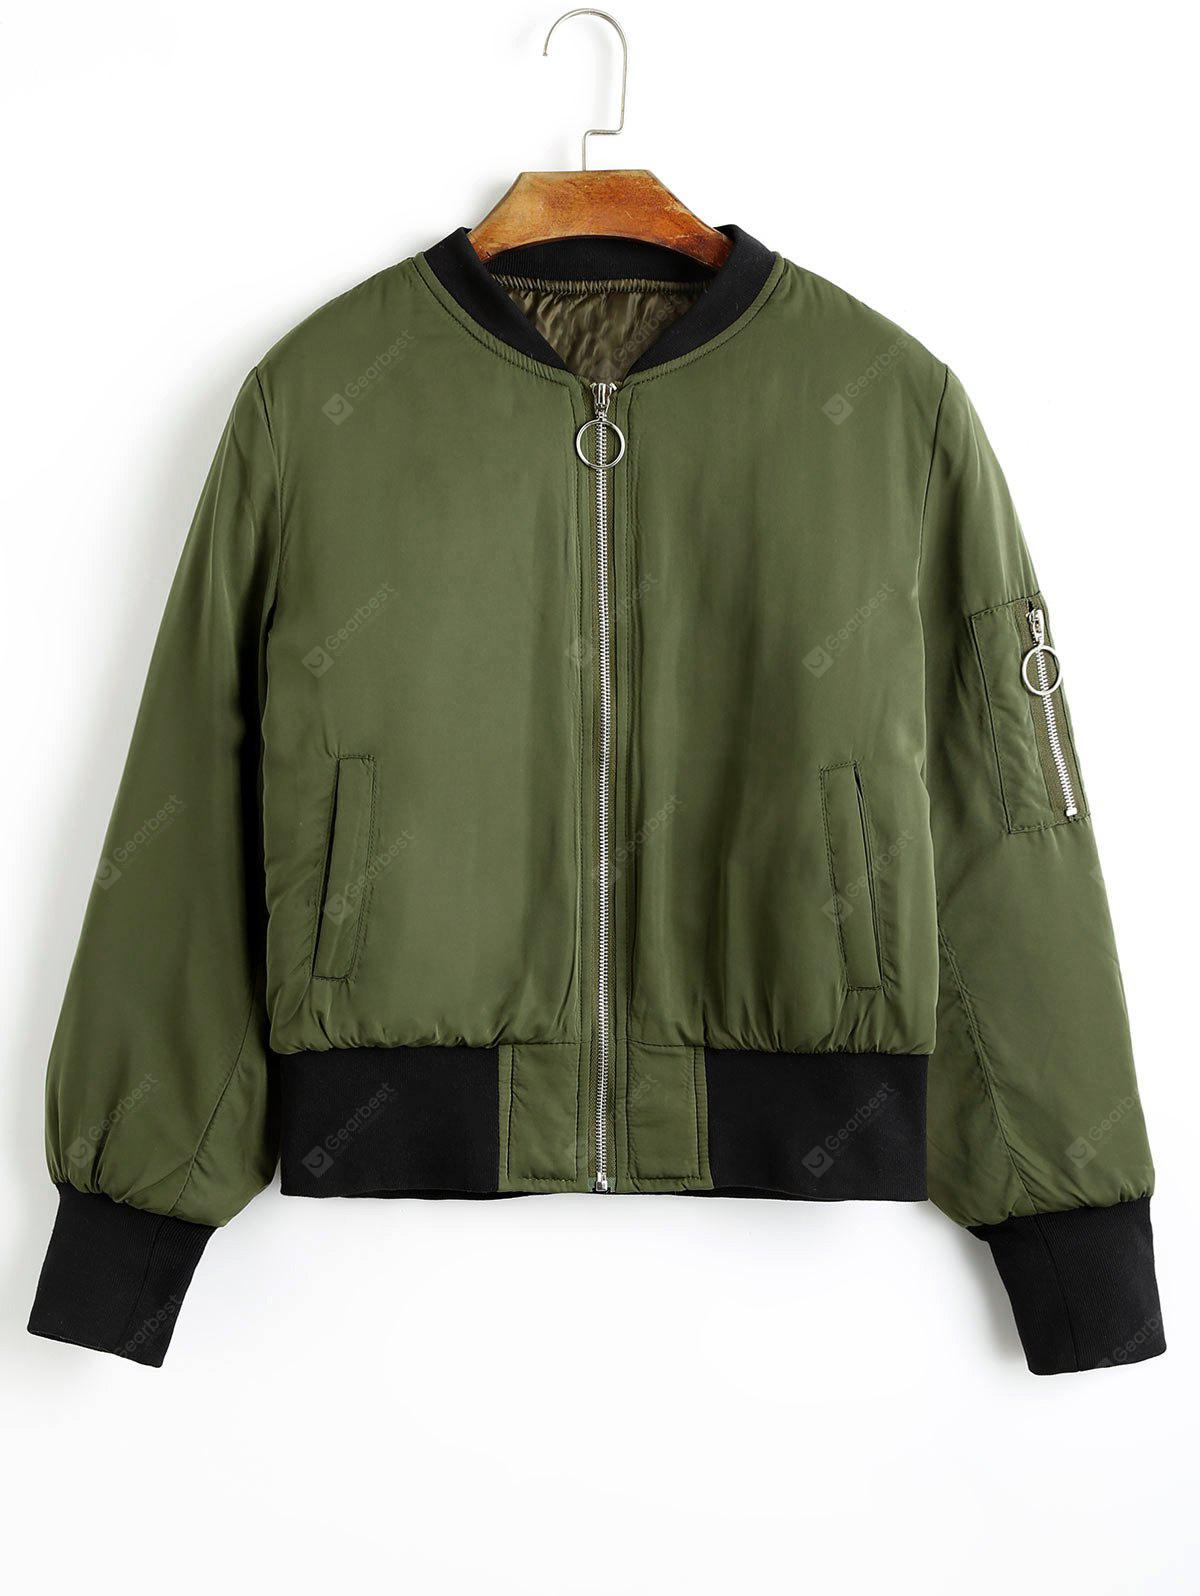 Zippered Puffer Jacket with Pockets